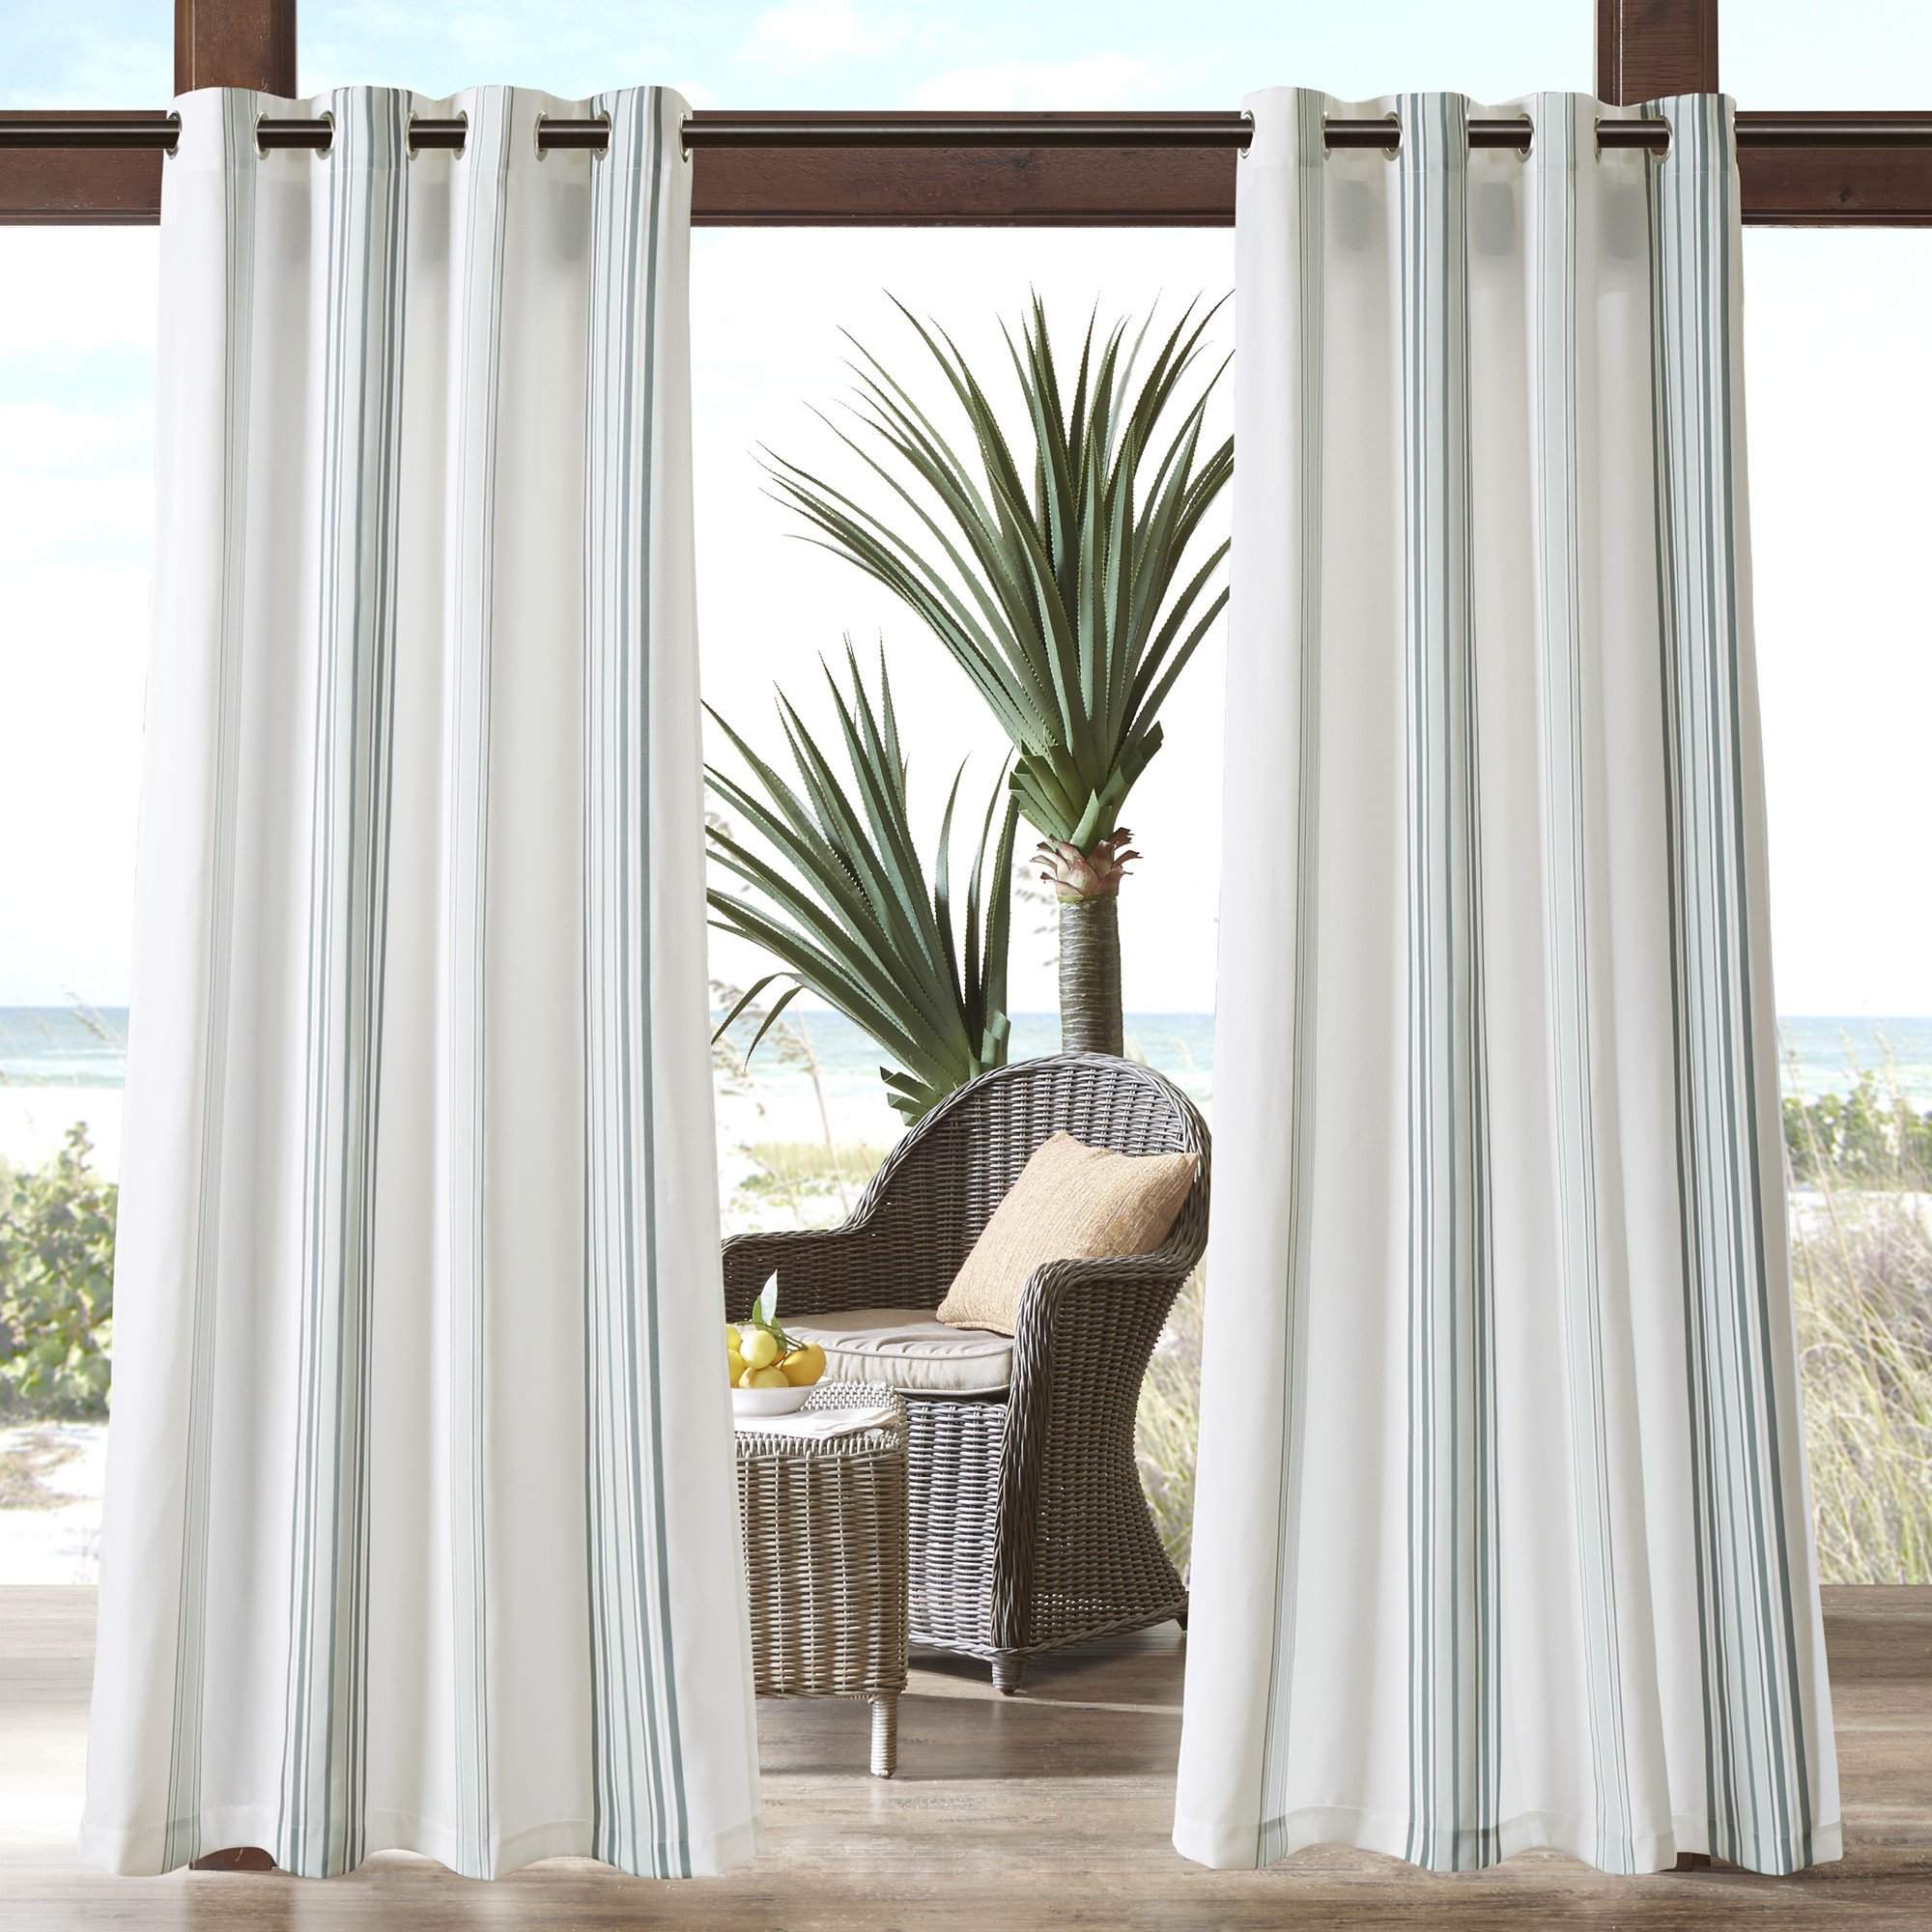 N&T 1 Piece Grey Cabana Stripes Gazebo Curtain Panel 84 inch, White Coastal Print Outdoor Curtain Light Filtering for Patio Porch, Water Resistant Outdoor Drapes Sunroom Grommet, Polyester